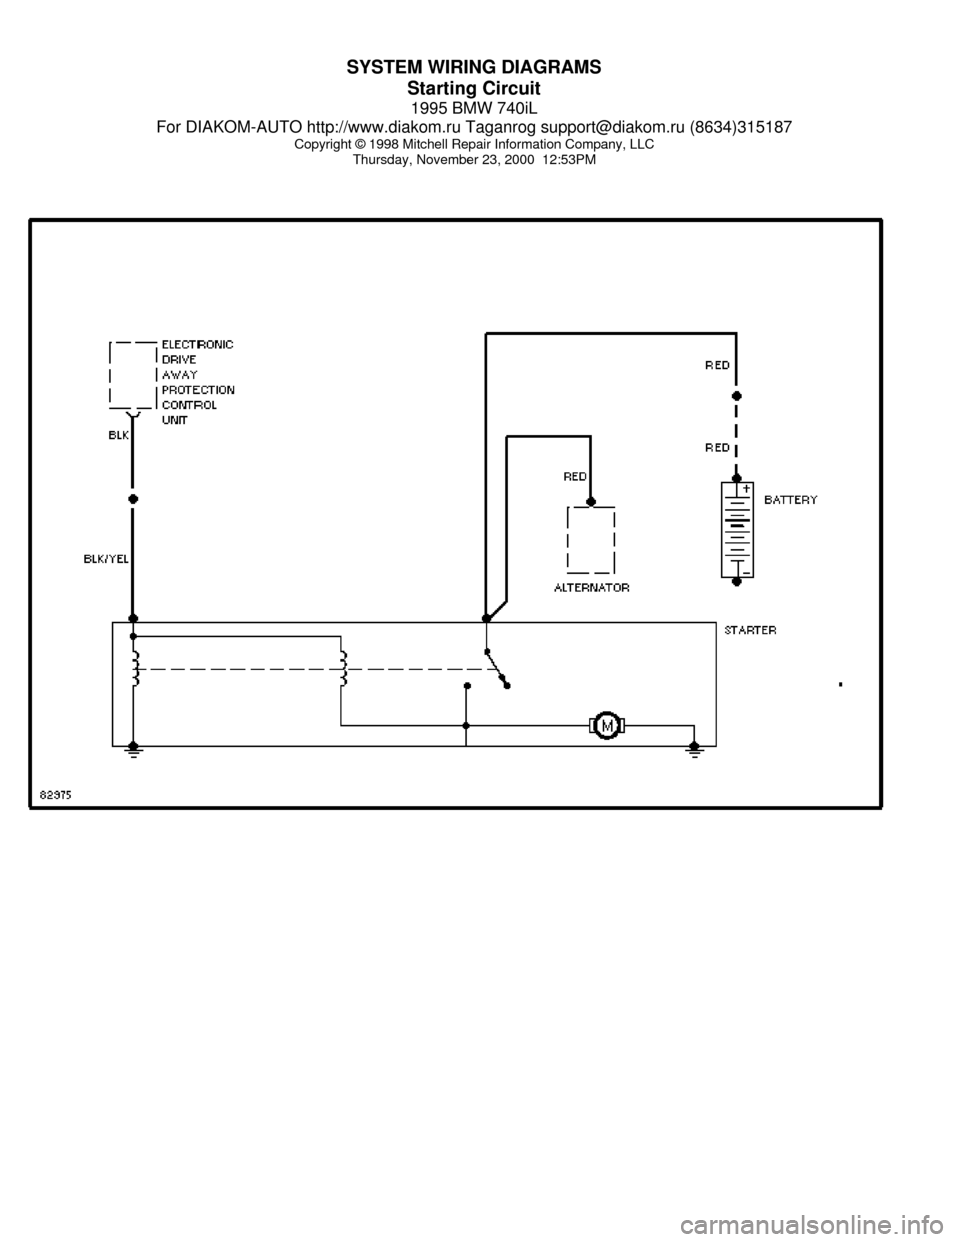 2000 bmw 740il wiring diagram 1999 BMW 740iL small resolution of bmw 740il 1995 e38 system wiring diagrams universal wiper switch wiring diagram at